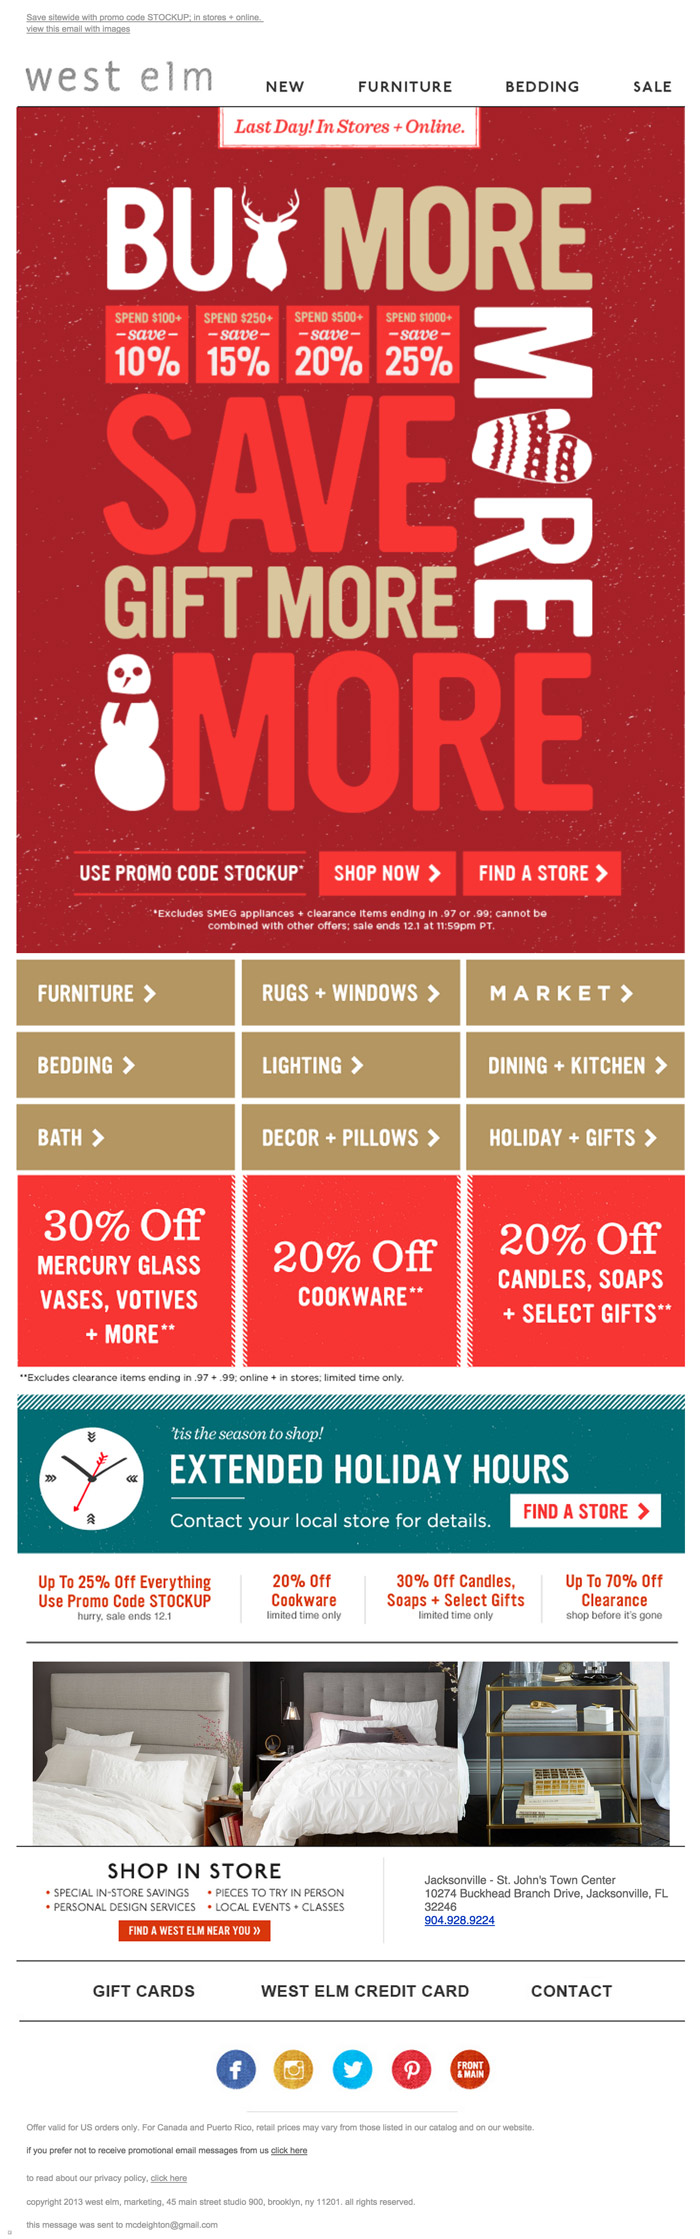 West Elm eCommerce email